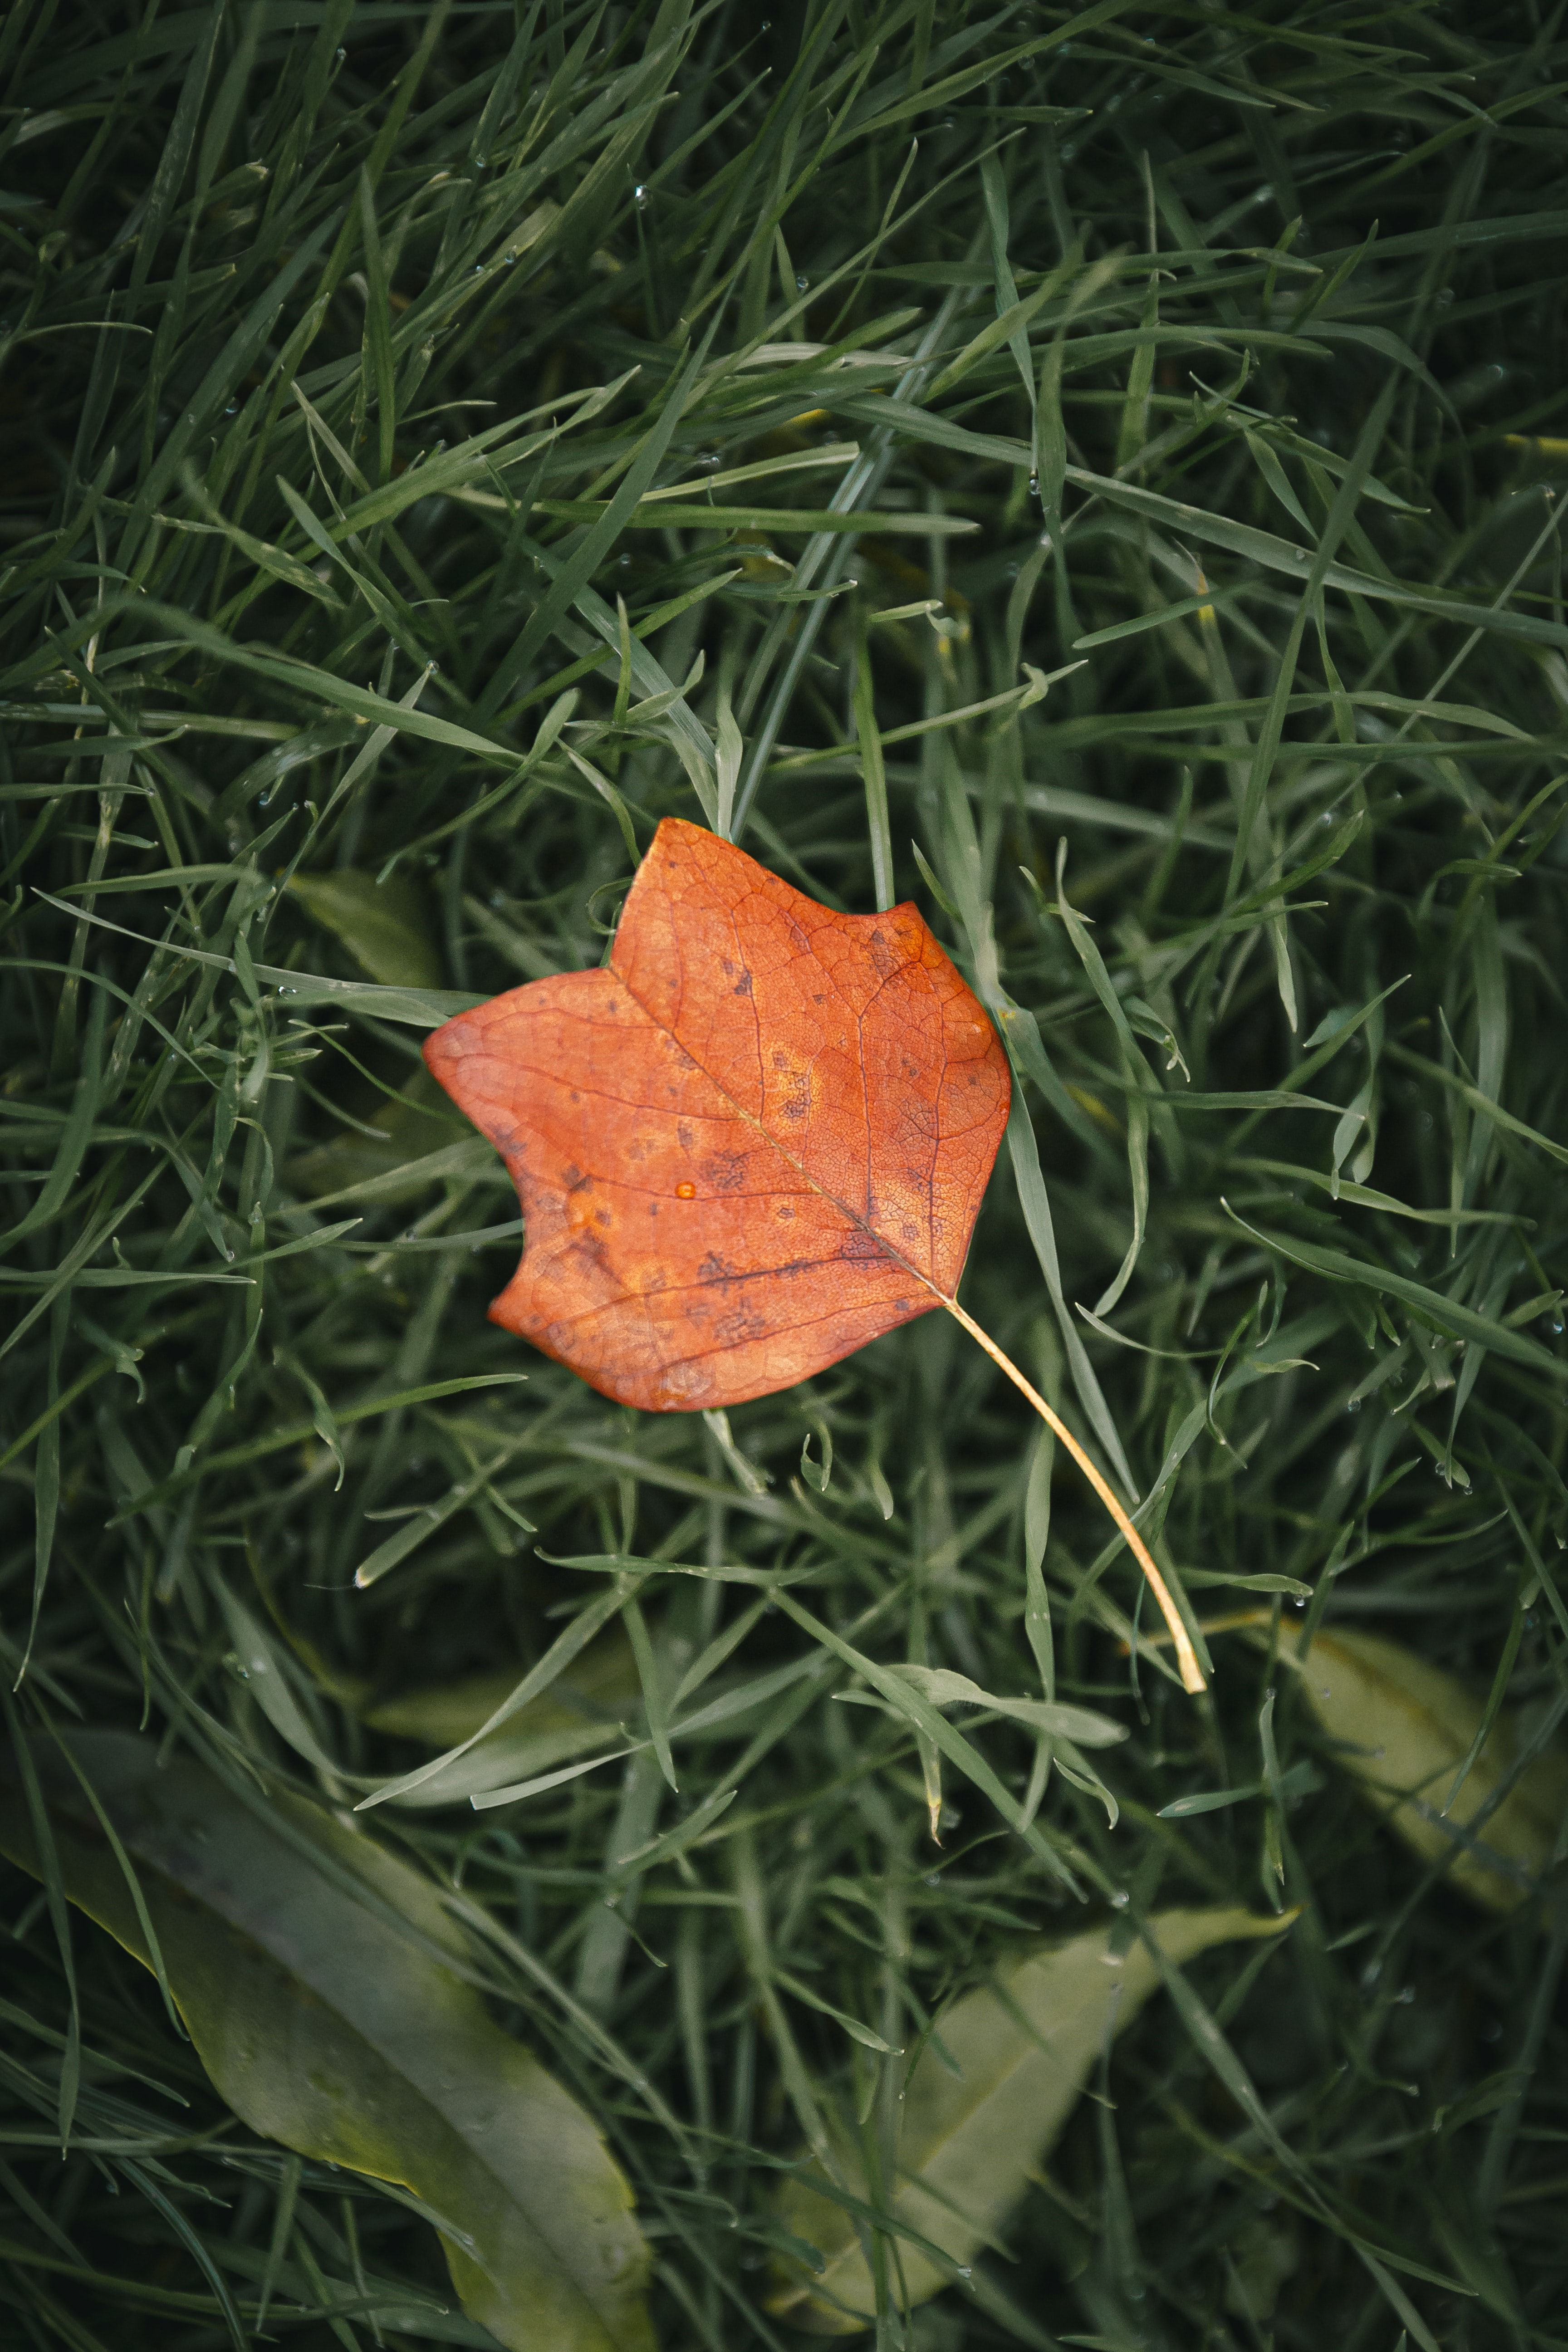 116050 download wallpaper Macro, Sheet, Leaf, Autumn, Grass, Veins screensavers and pictures for free